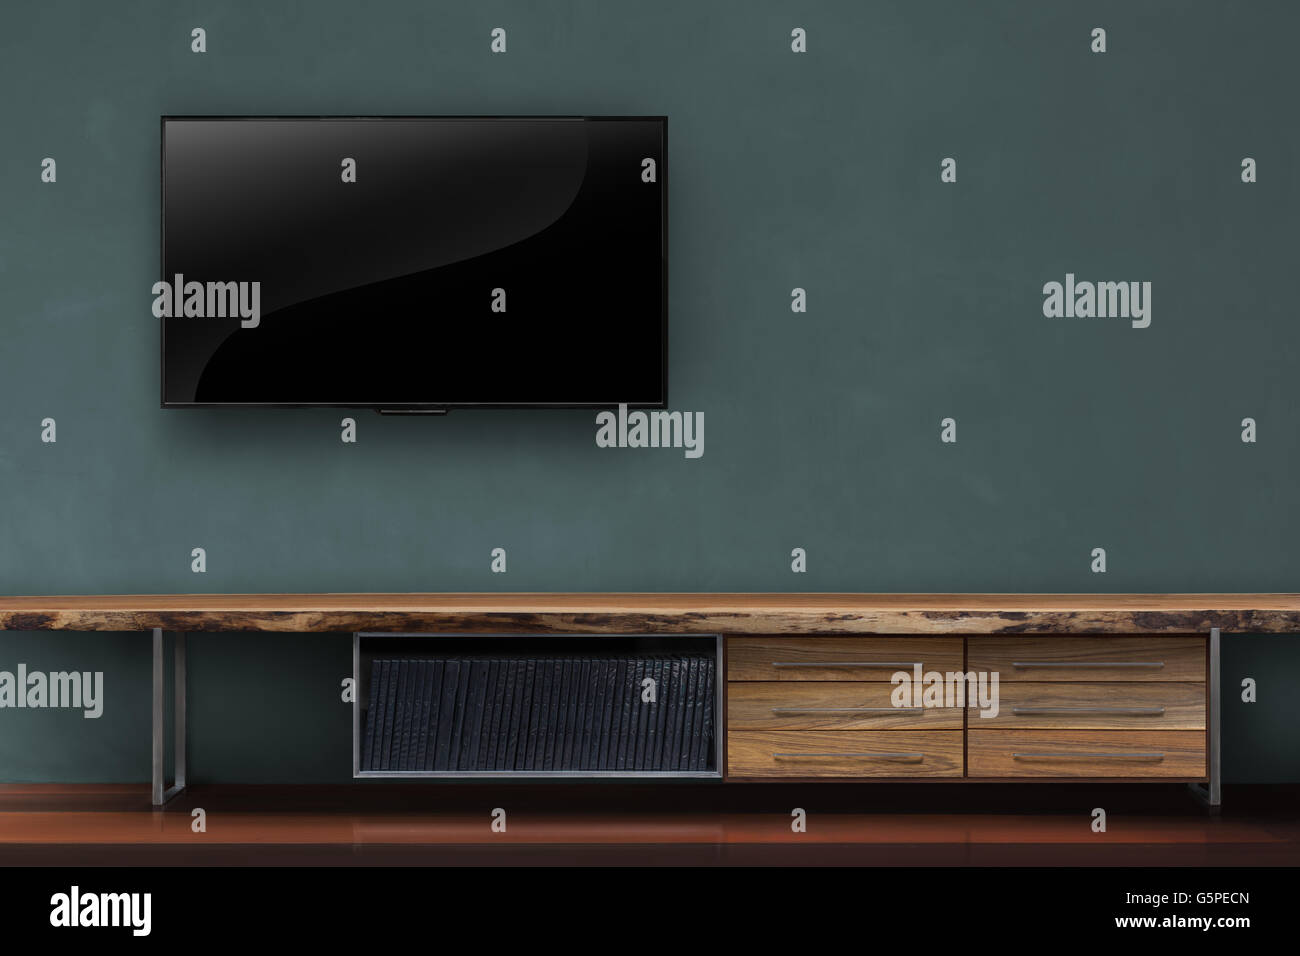 Living Room Led Tv On Dark Green Wall With Wooden Table Media Furniture Modern Loft Style